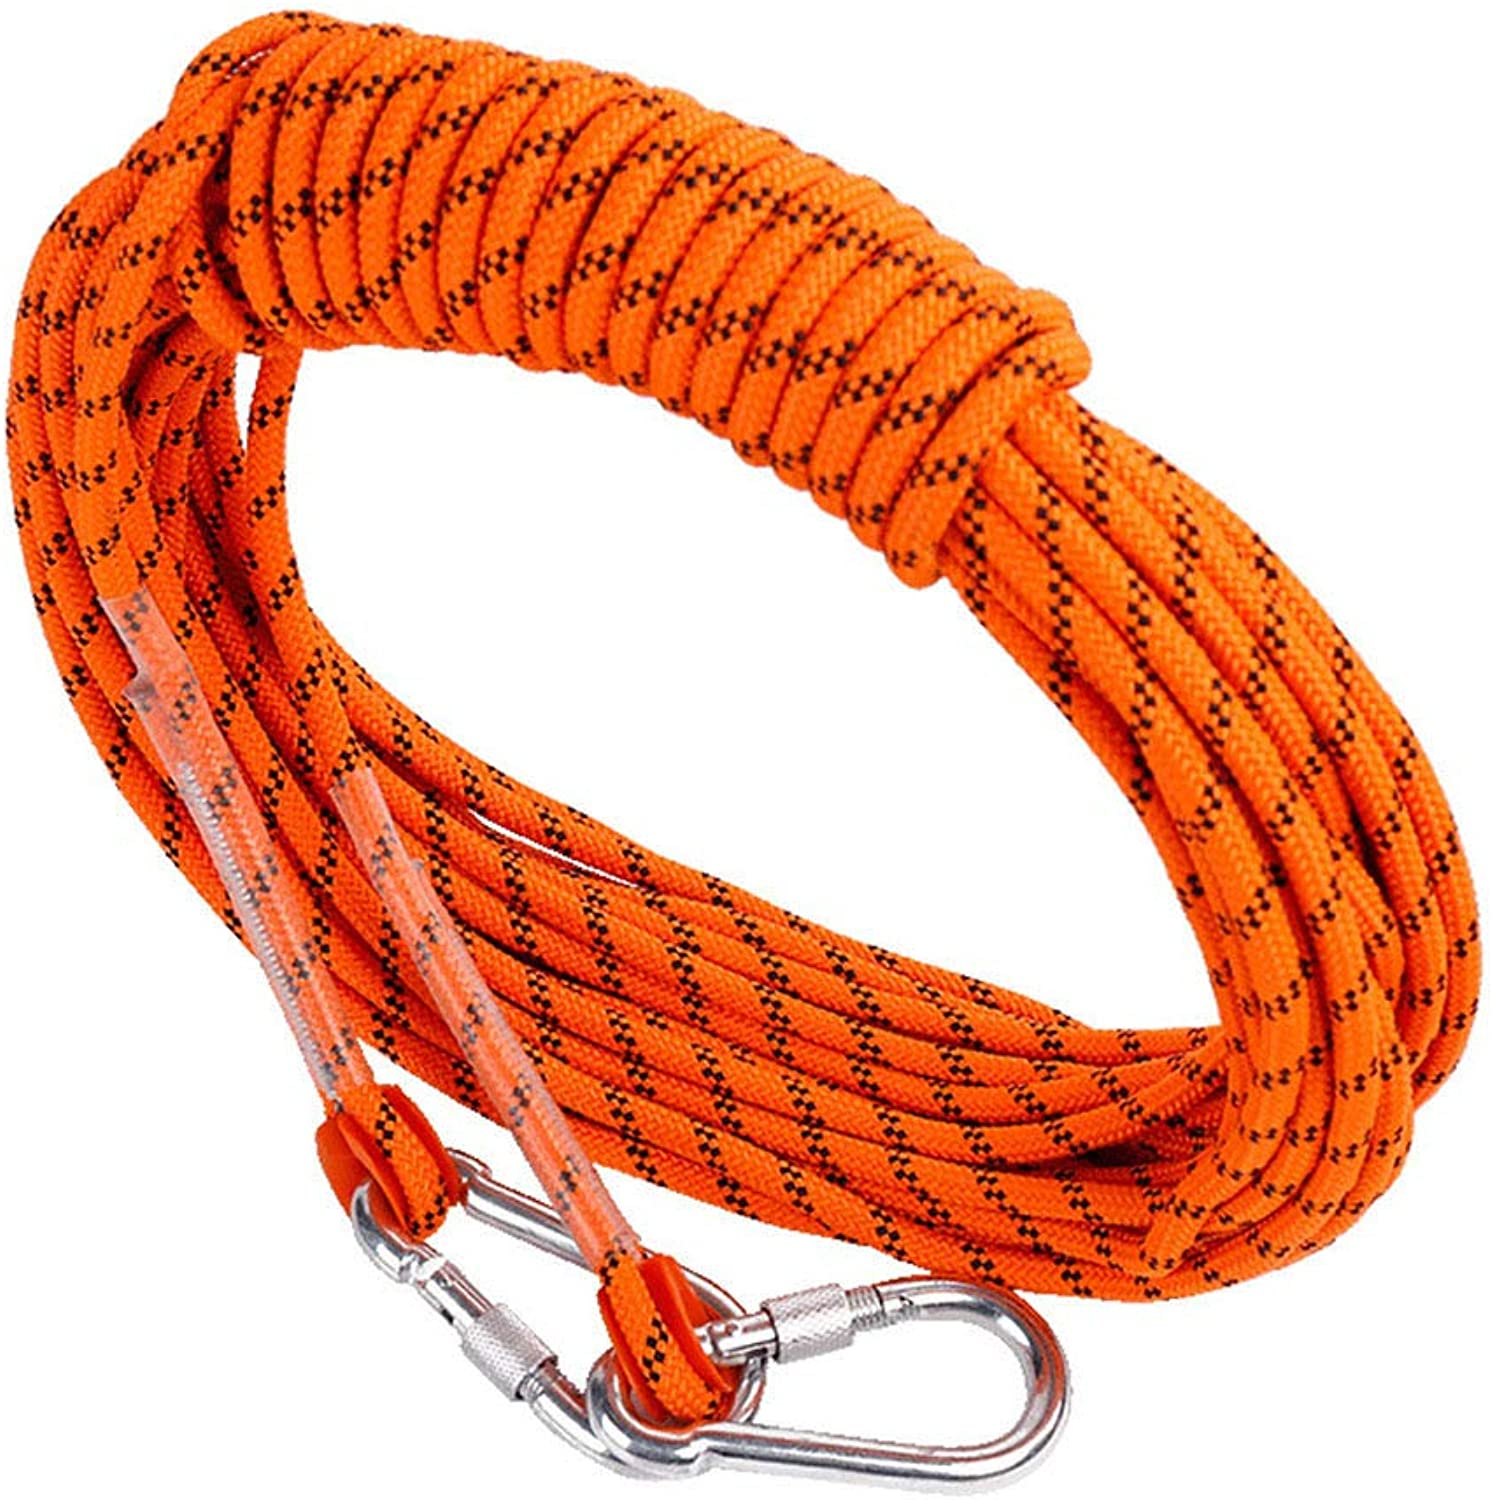 Climbing Rope, Outdoor Safety Rope wearResistant Climbing Rope Rescue Rope Rescue Equipment, Diameter 10.5mm, orange,20m